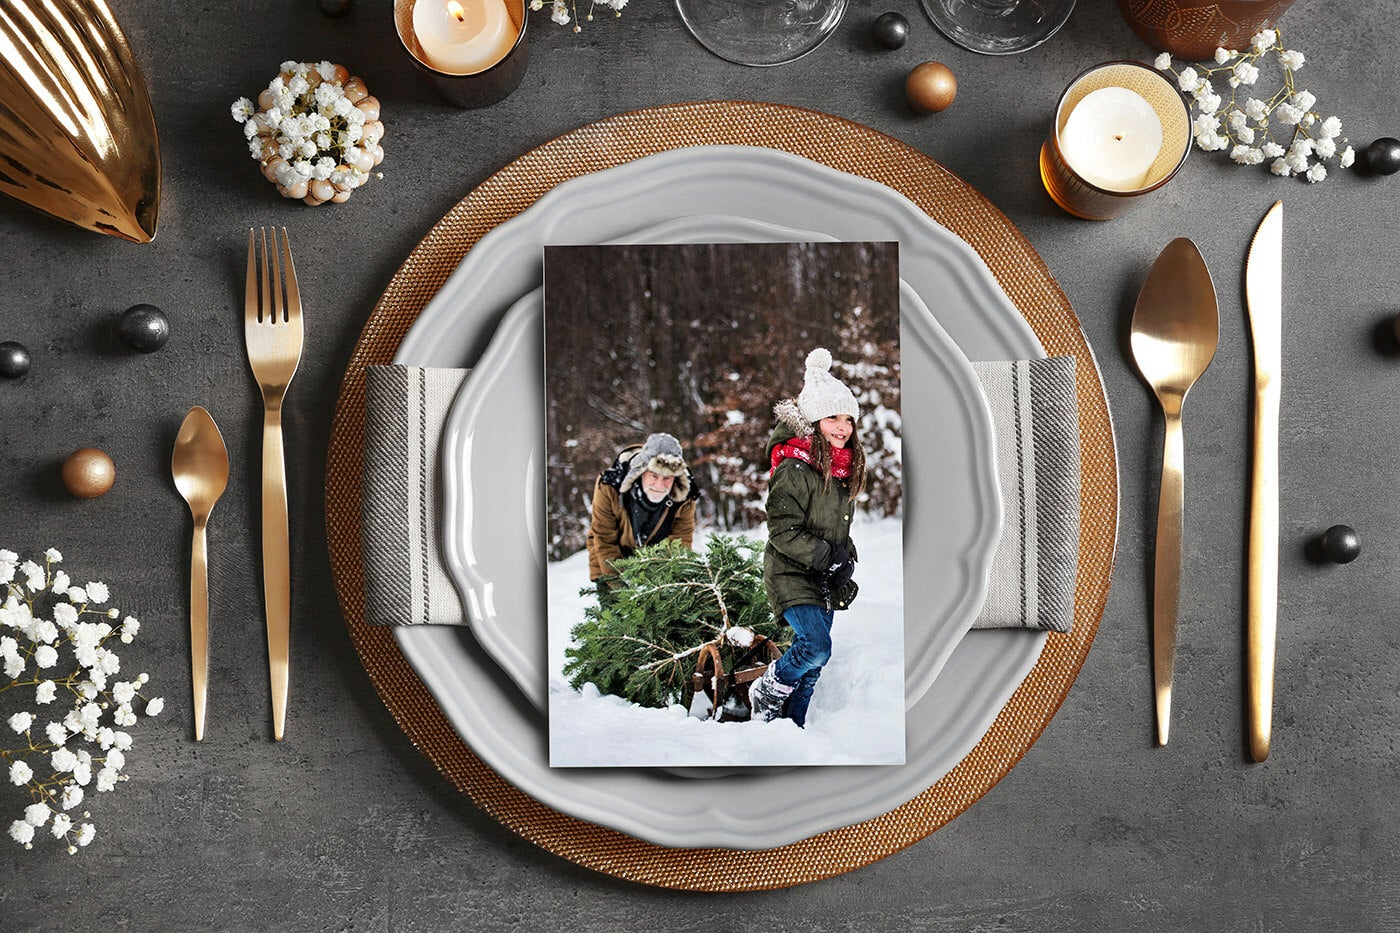 holiday place setting with a photo by printique on the plate